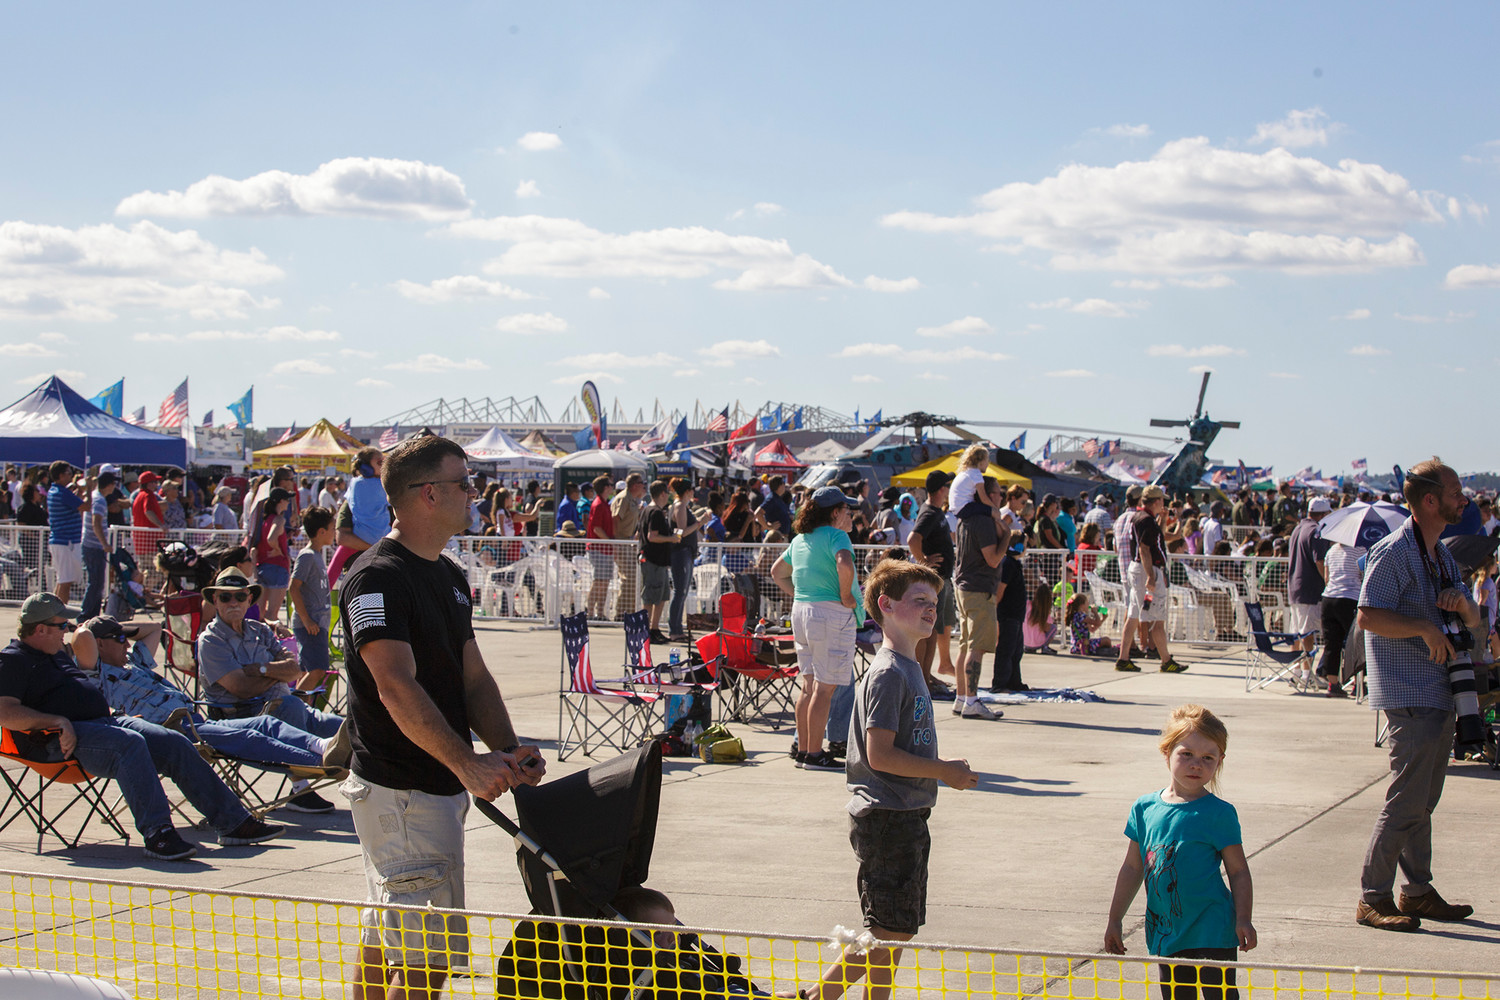 Crowds watch as the Blue Angels board their planes and head onto the runway in preparation for takeoff at Naval Air Station Jacksonville during their annual air show.